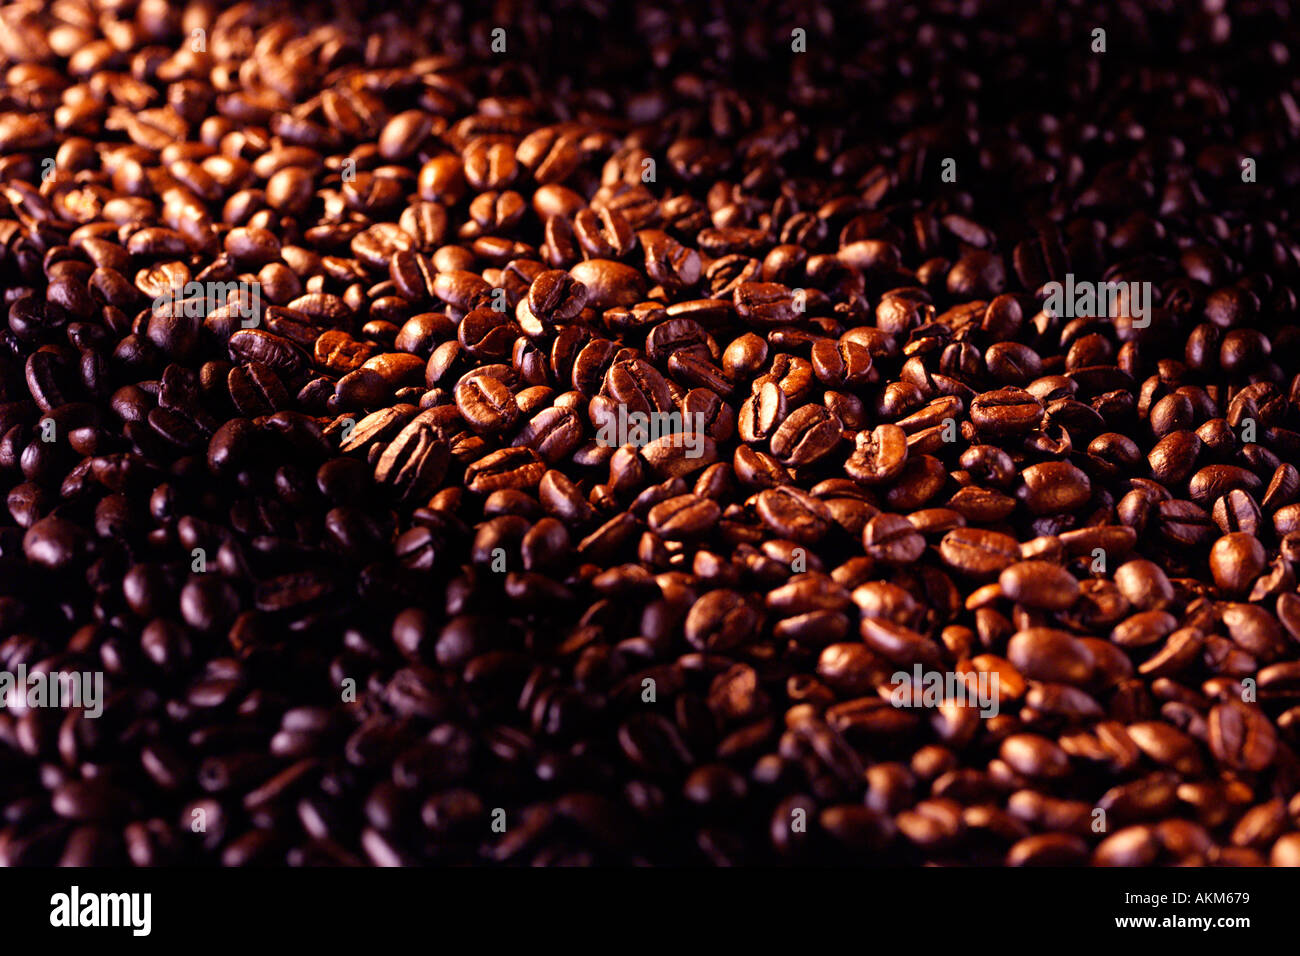 MASS OF COFFEE BEANS WITH RAY OF SUNLIGHT - Stock Image